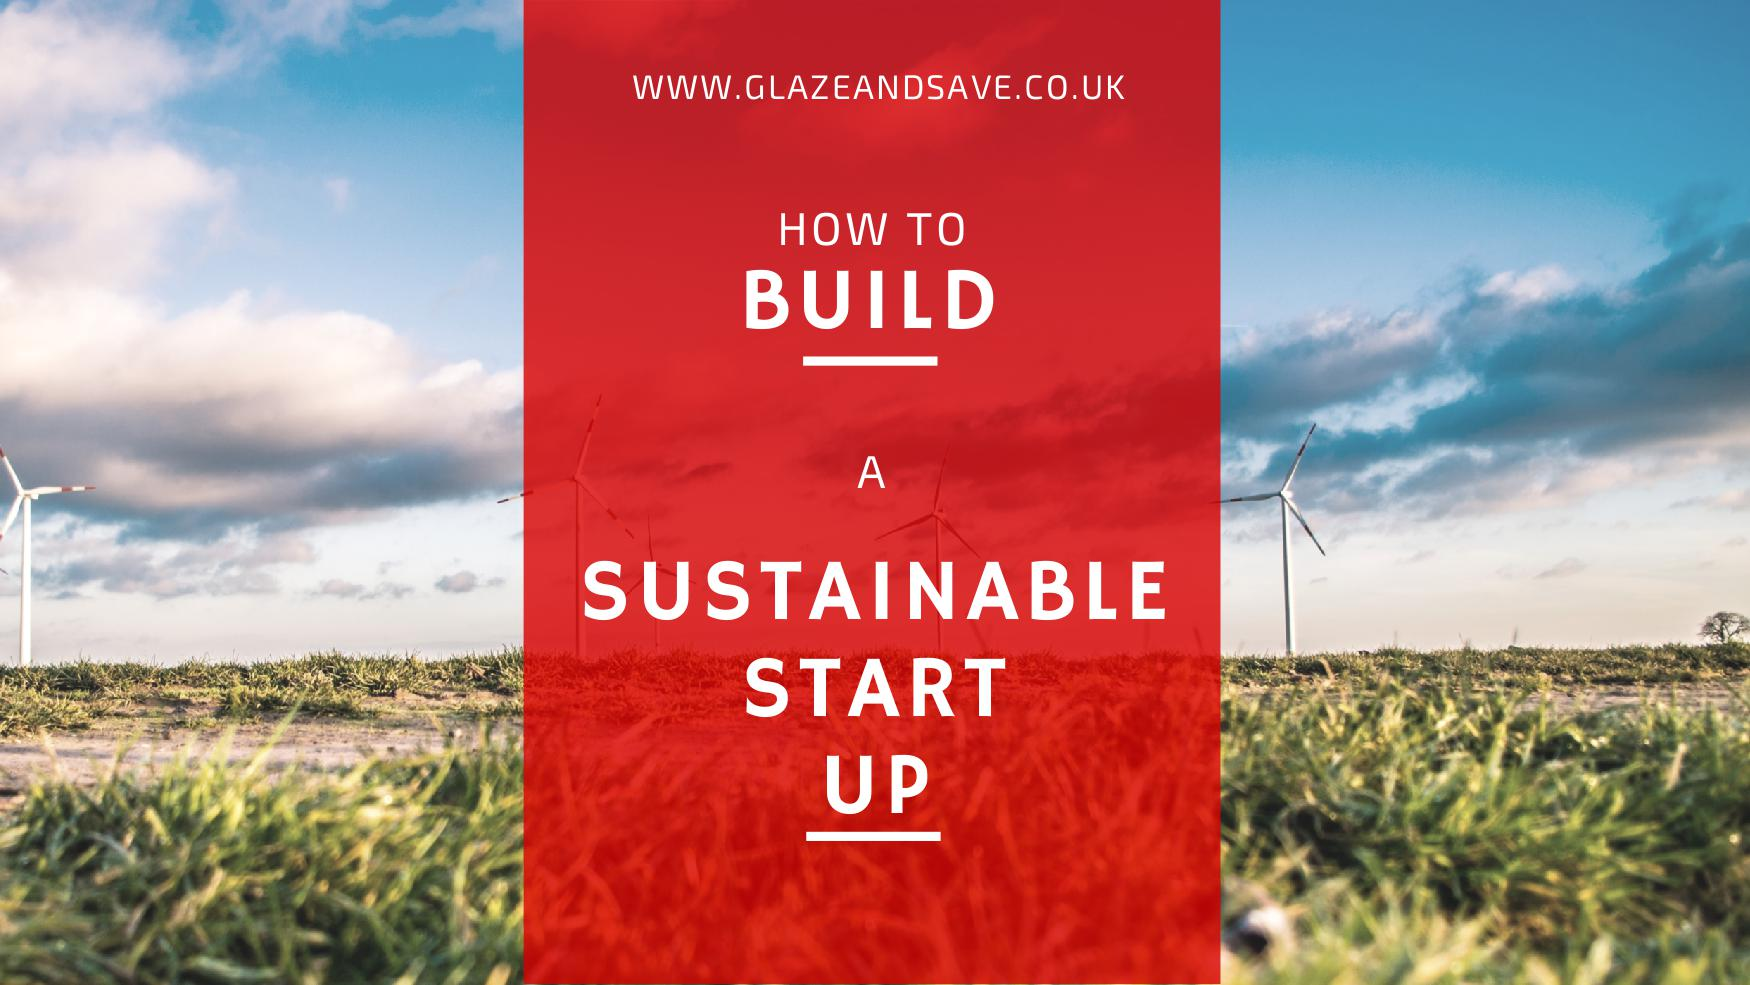 How to build a sustainable start up www.glazeandsave.co.uk